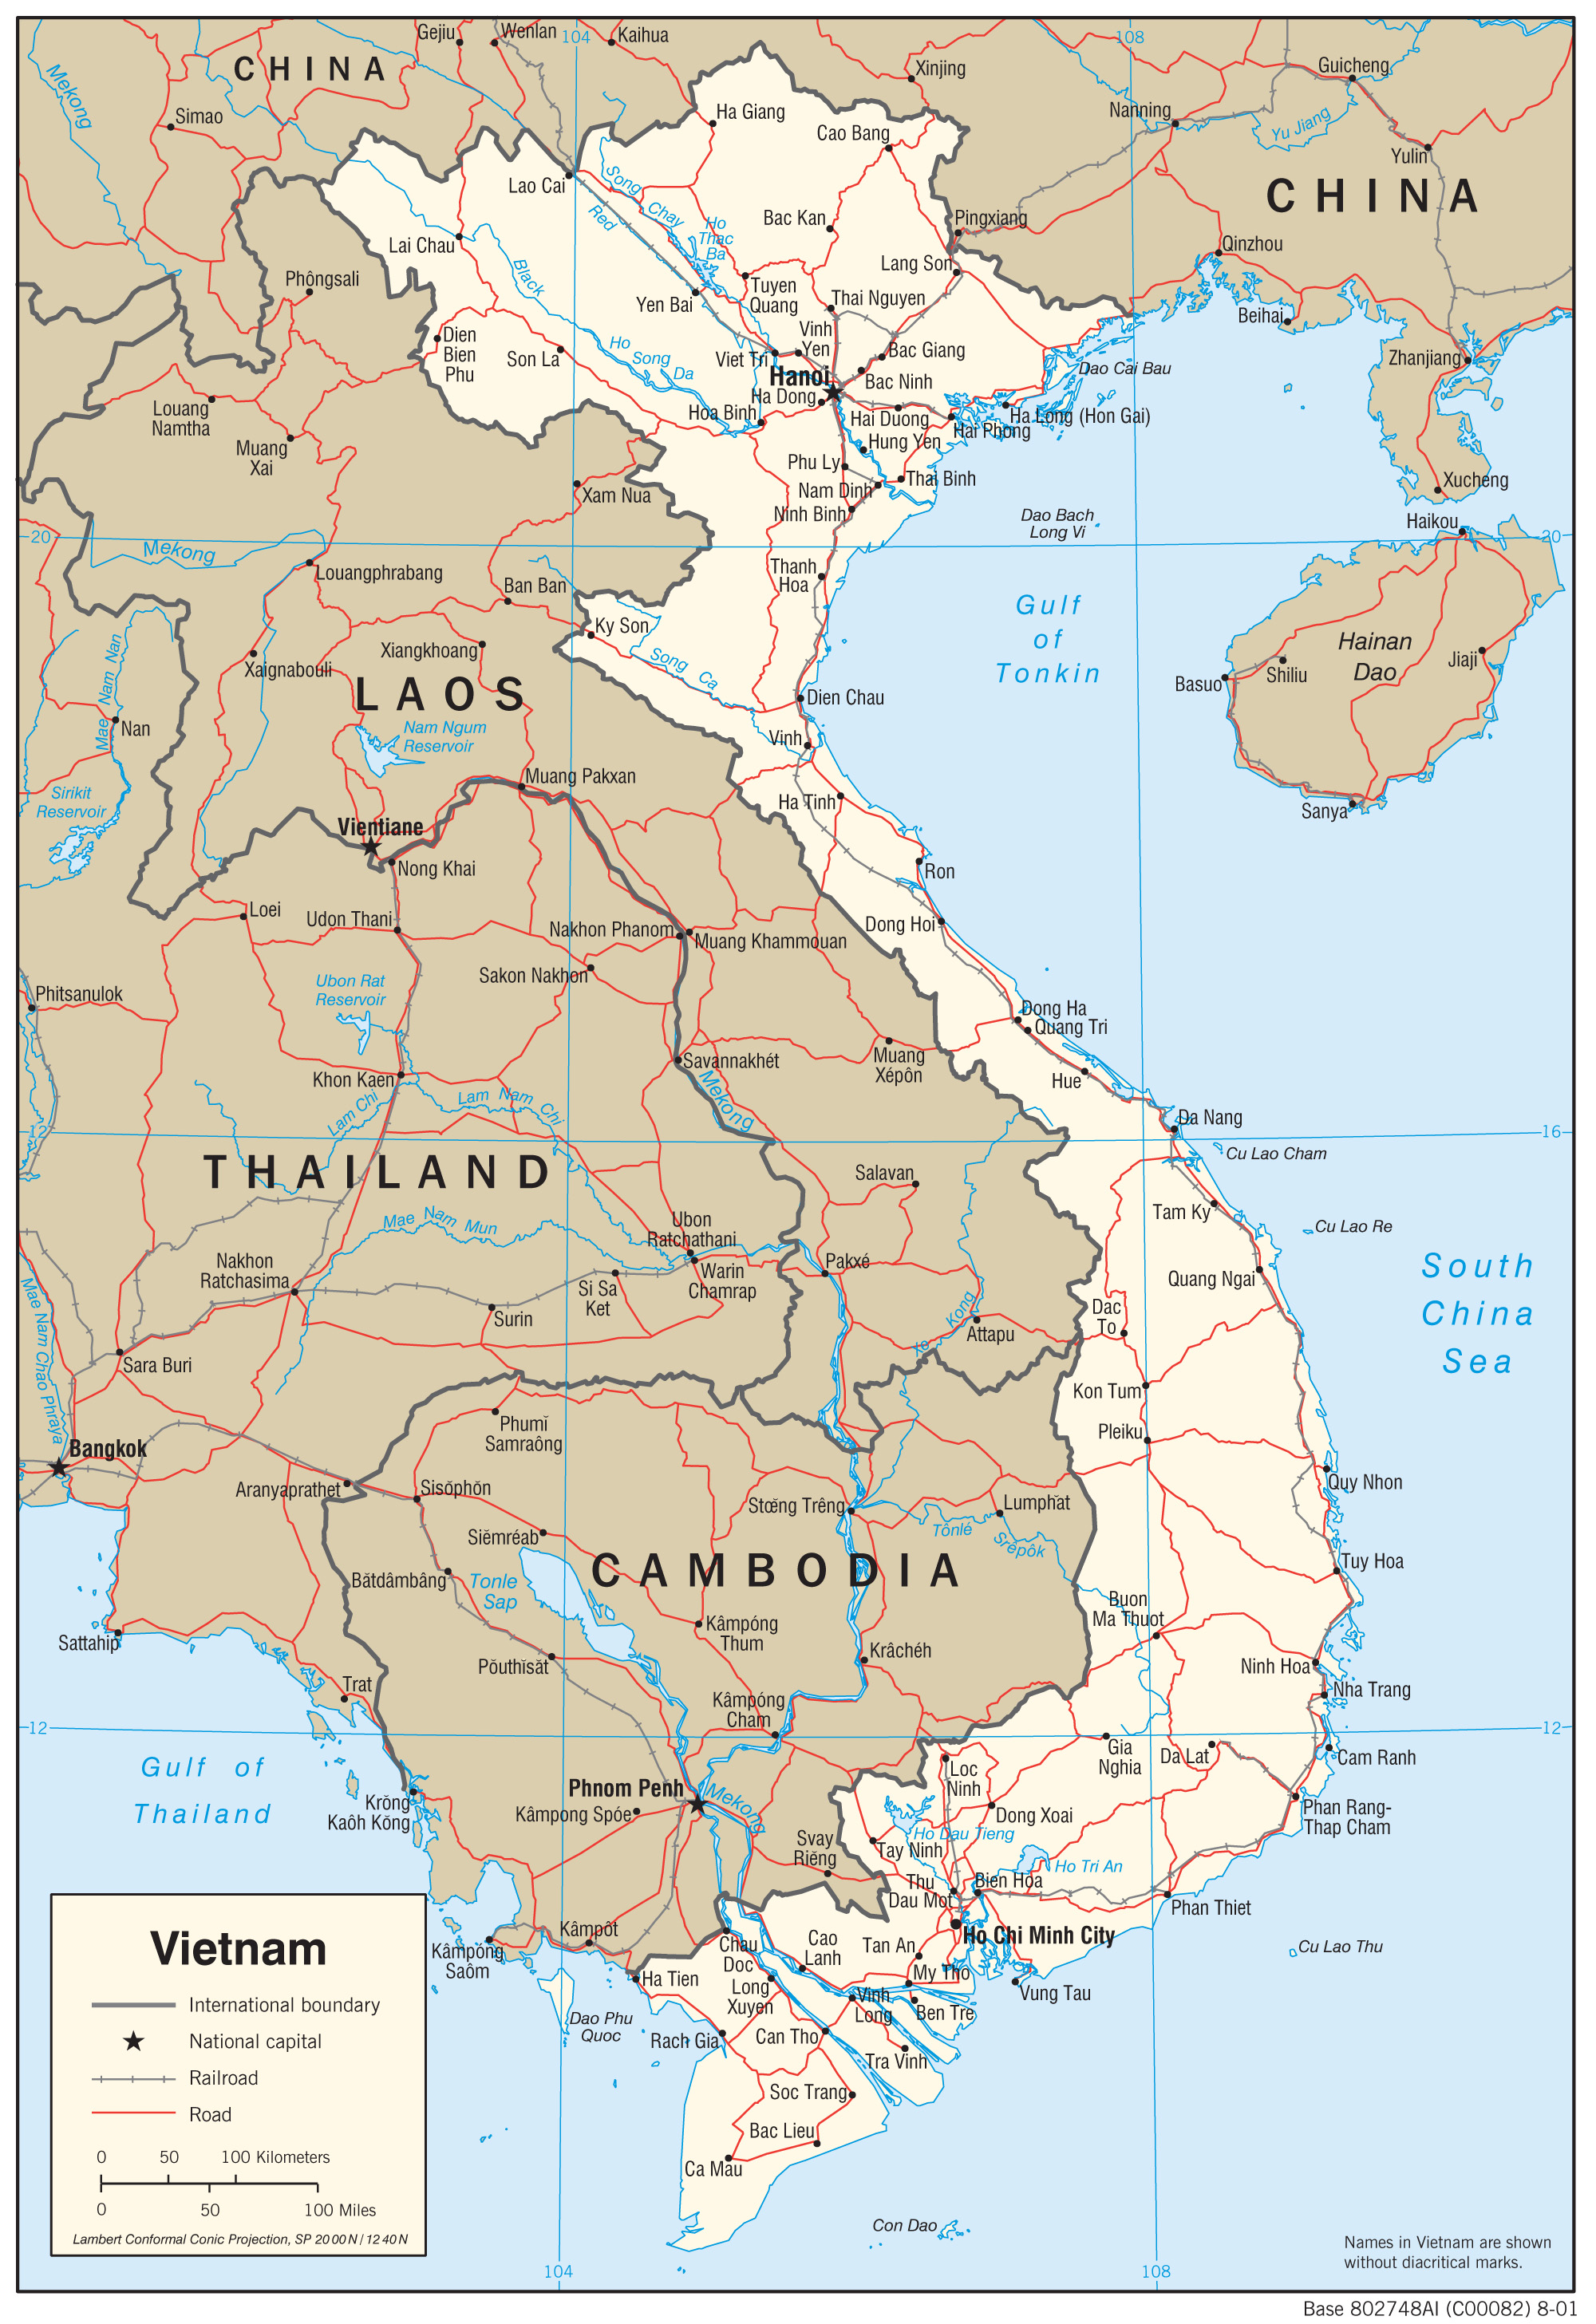 Vietnam Maps - Perry-Castañeda Map Collection - UT Library Online